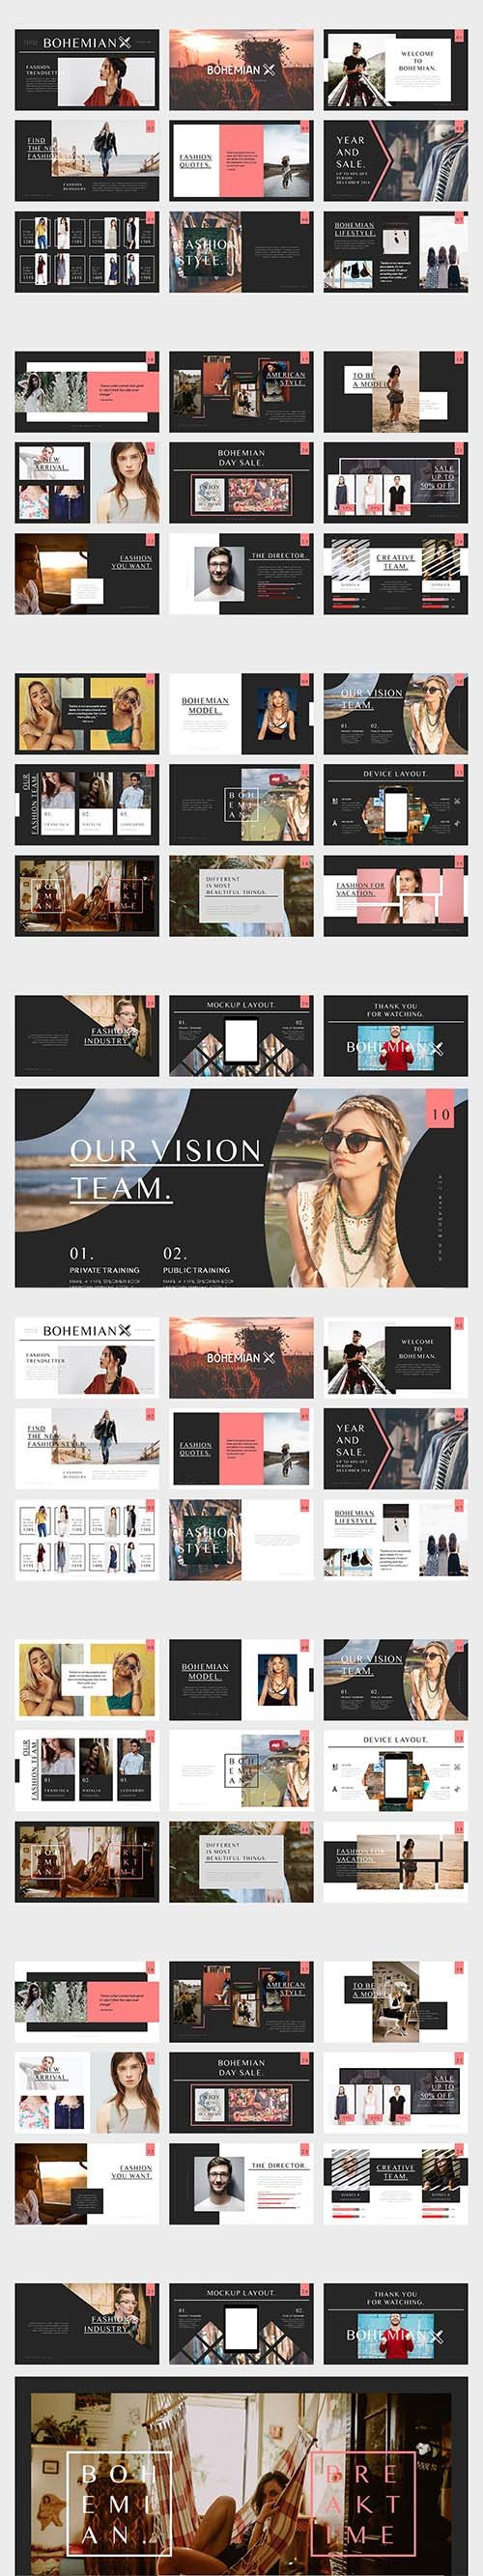 Bohemian Fashion Catalogue Powerpoint Template